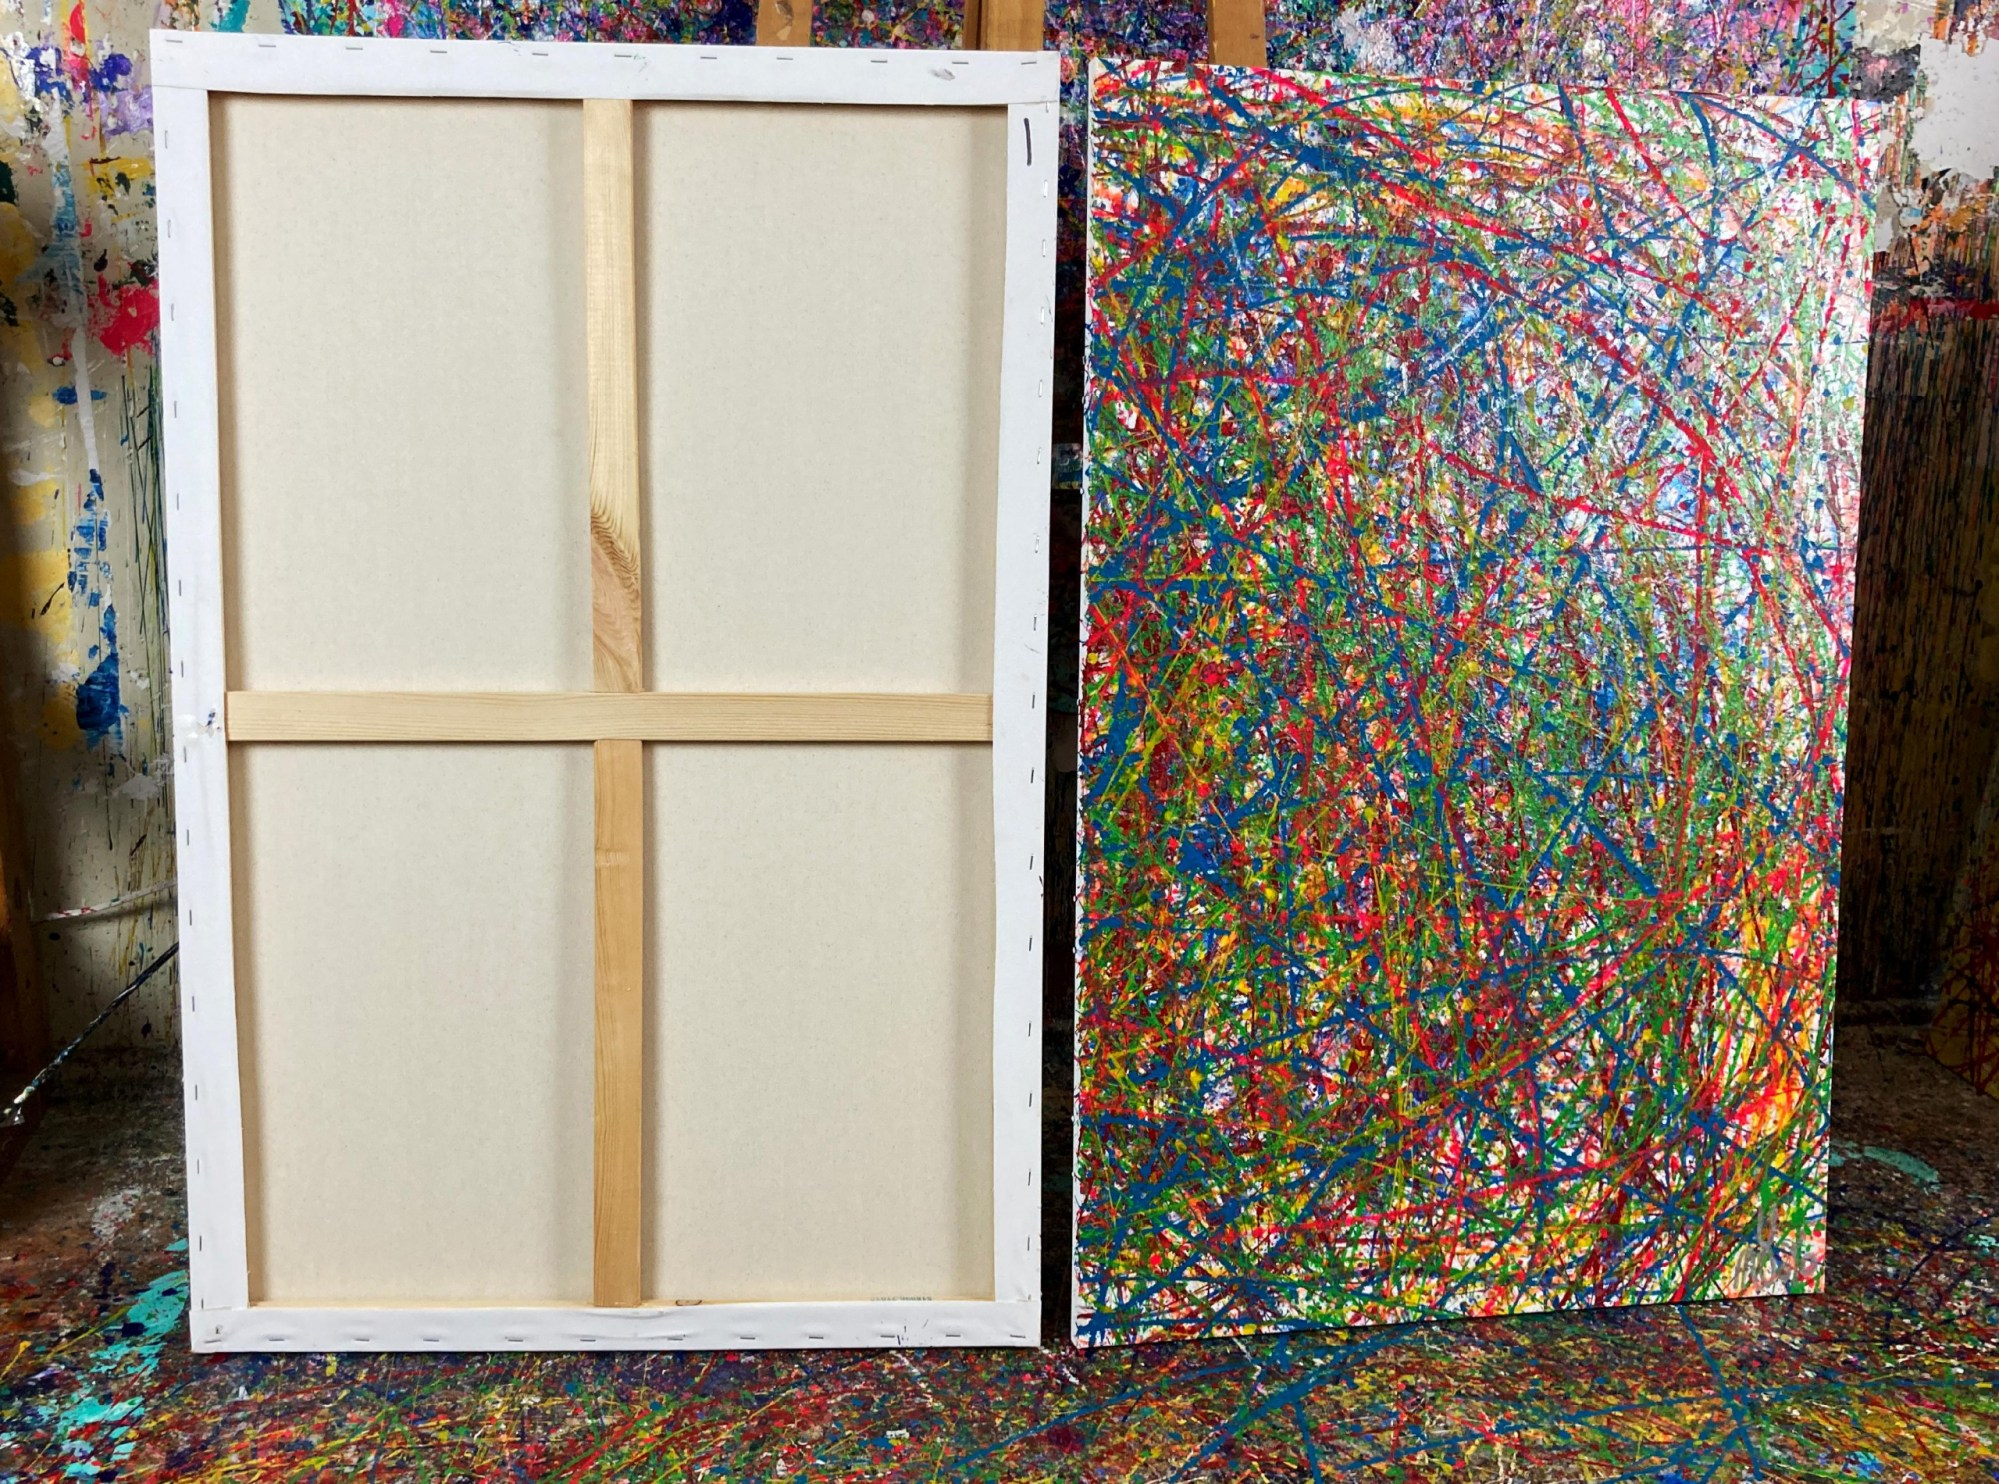 BACK VIEW / Colorful display of affection 2 (2021) / Diptych